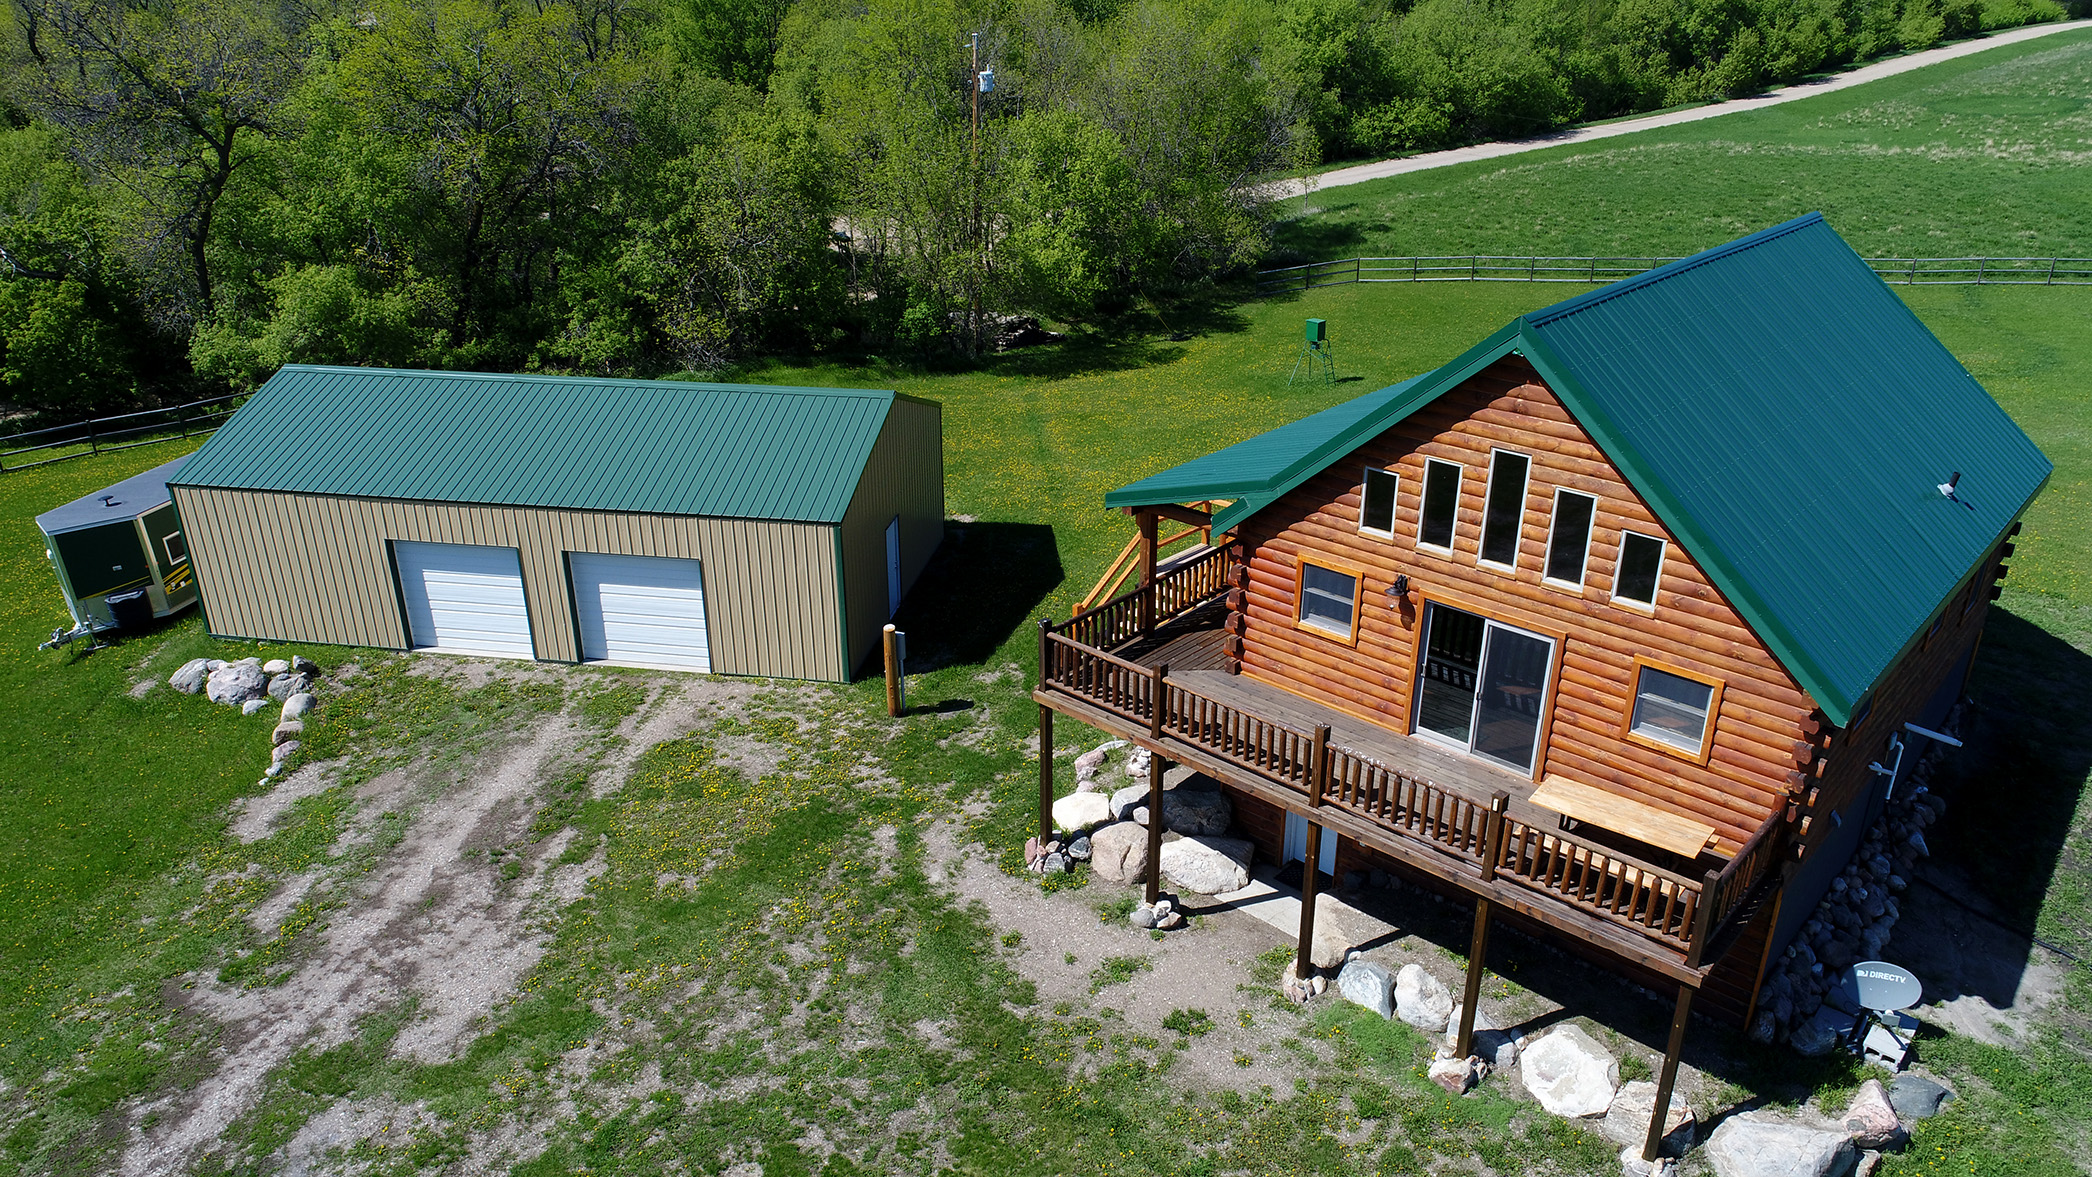 Give your property an elevated view with drone imagery.